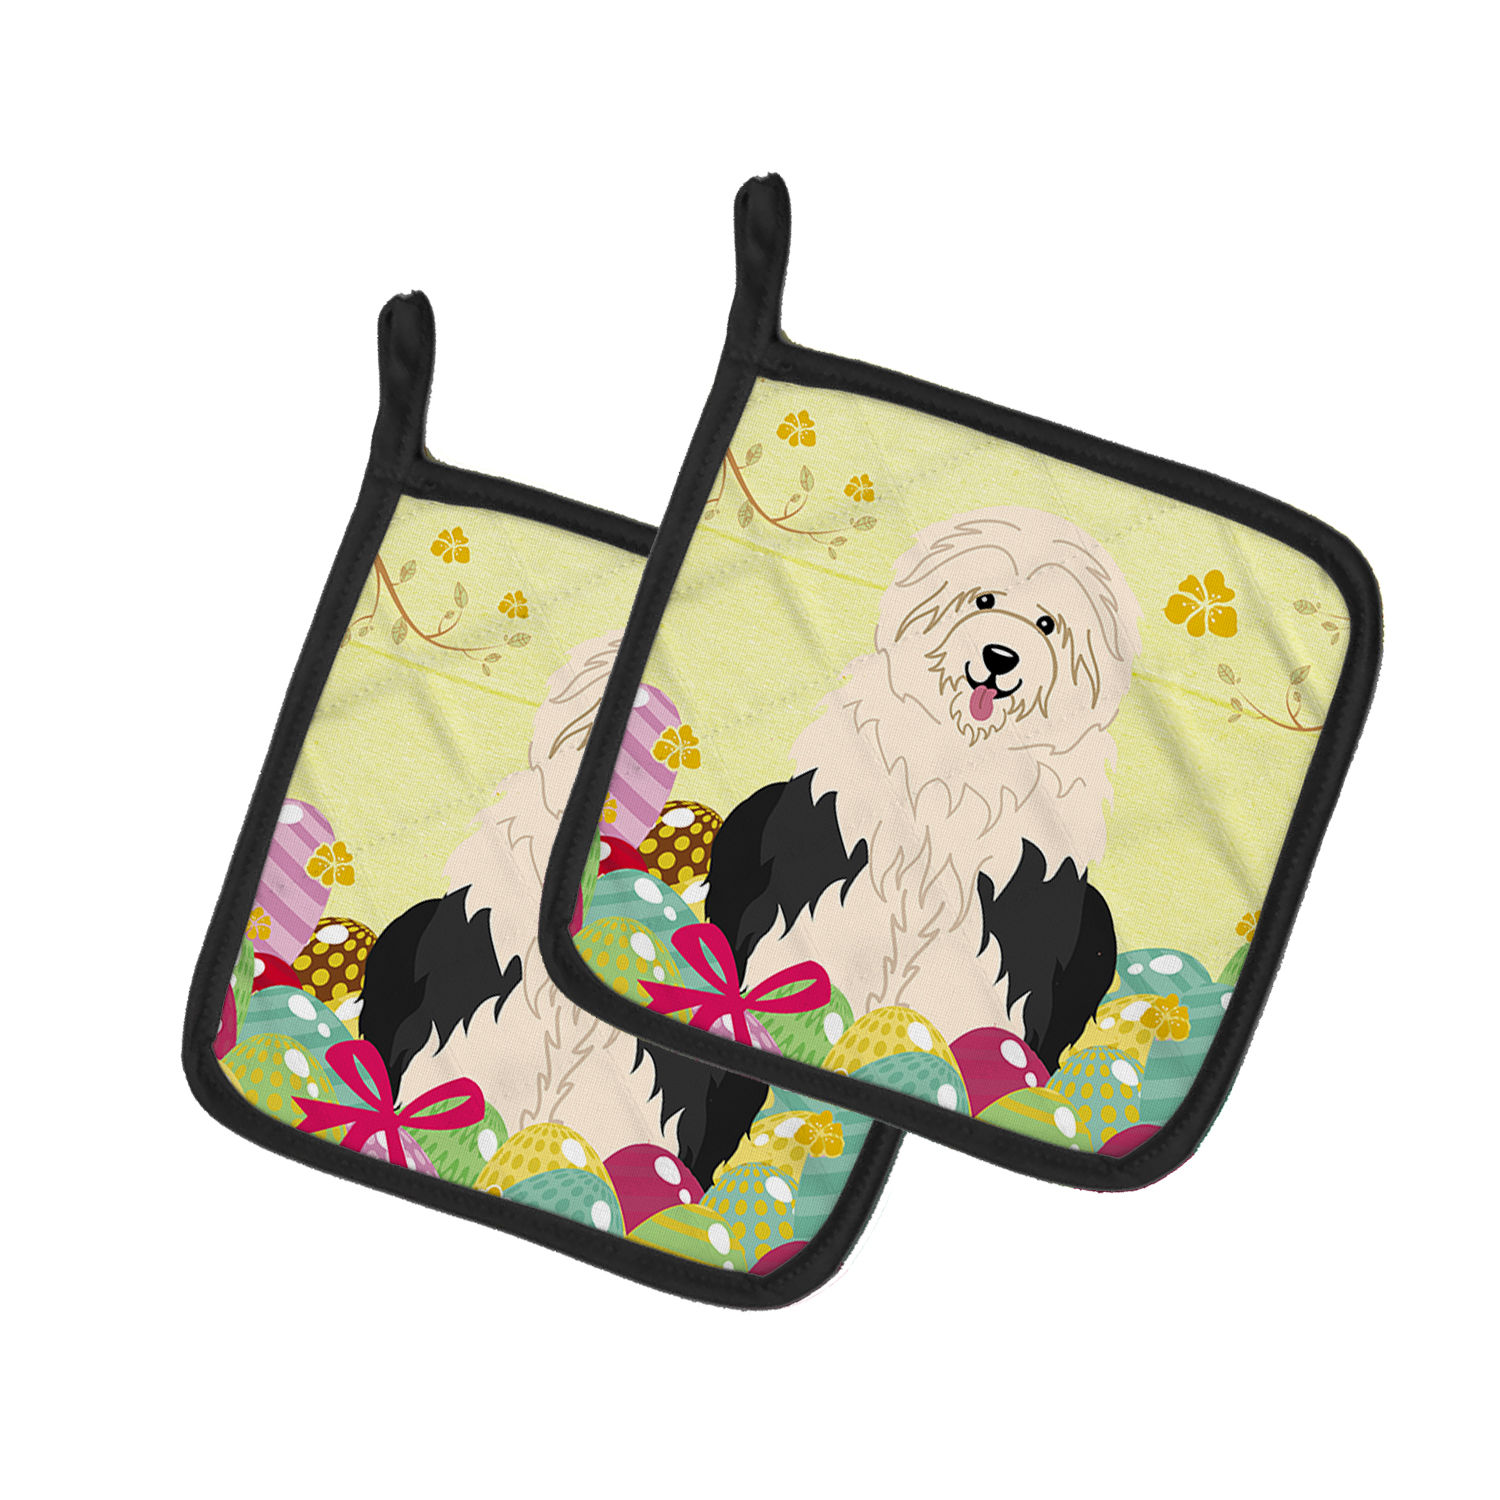 Old fashioned pot holders 15